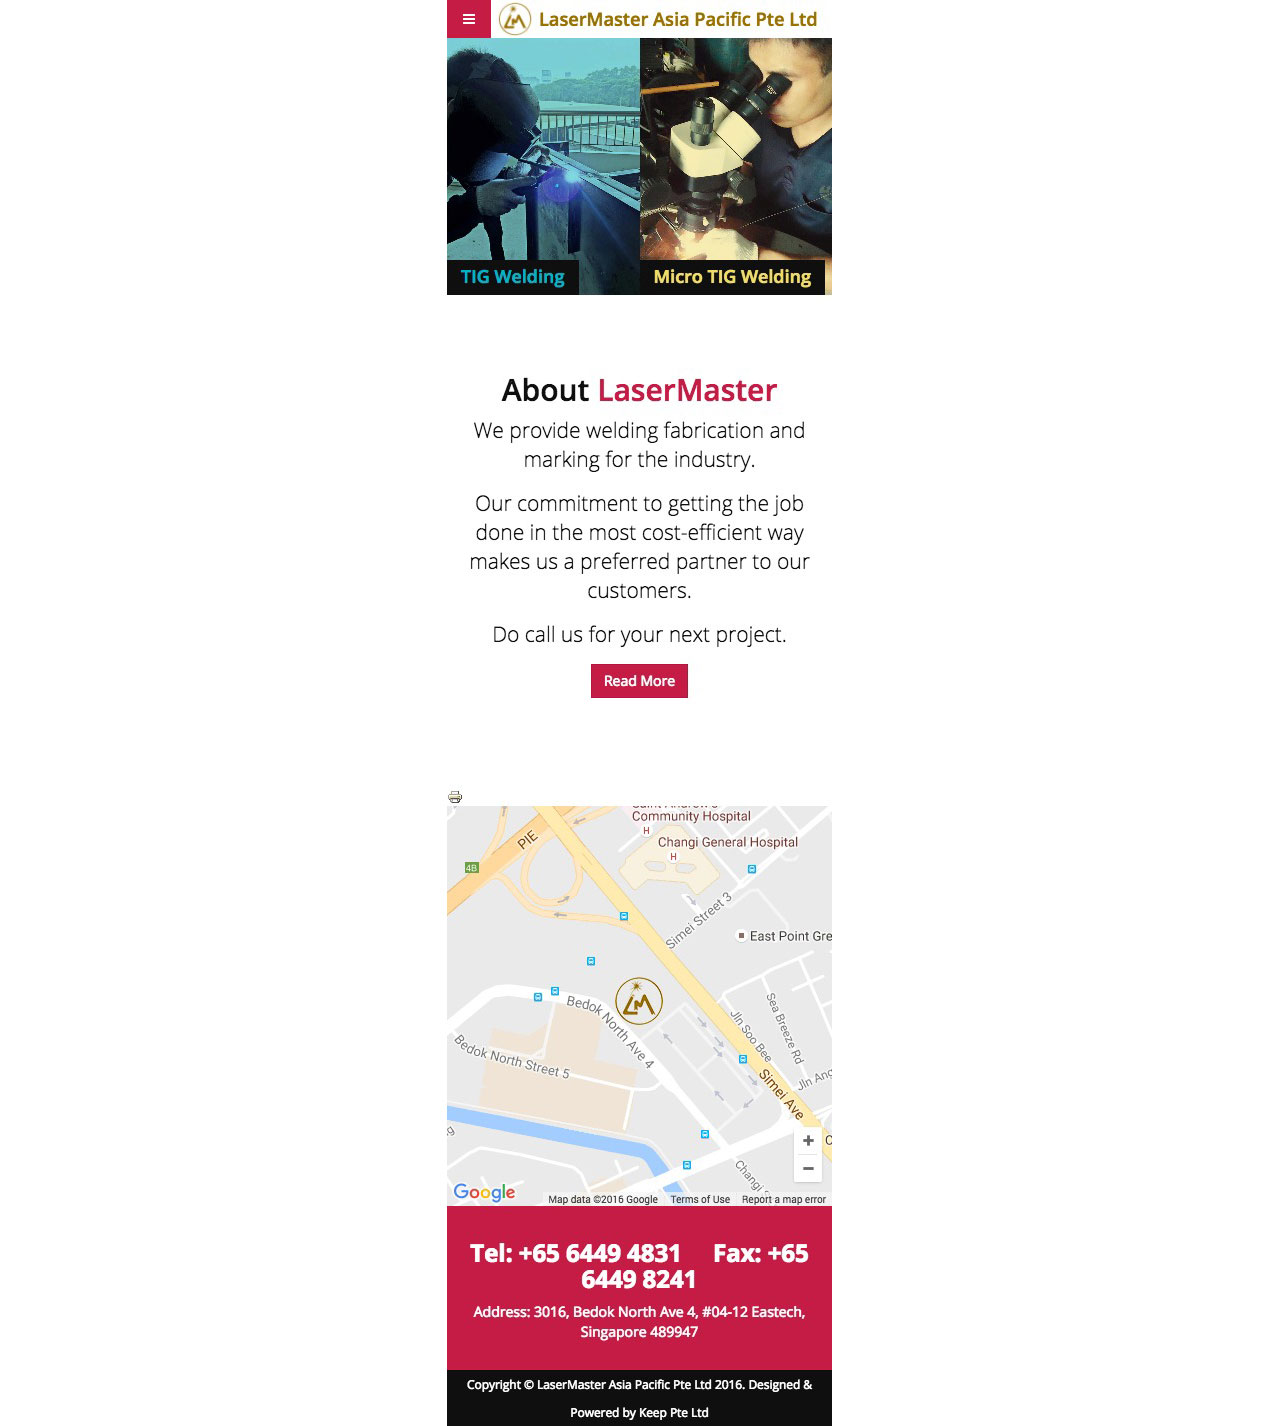 Lasermaster website homepage on mobile